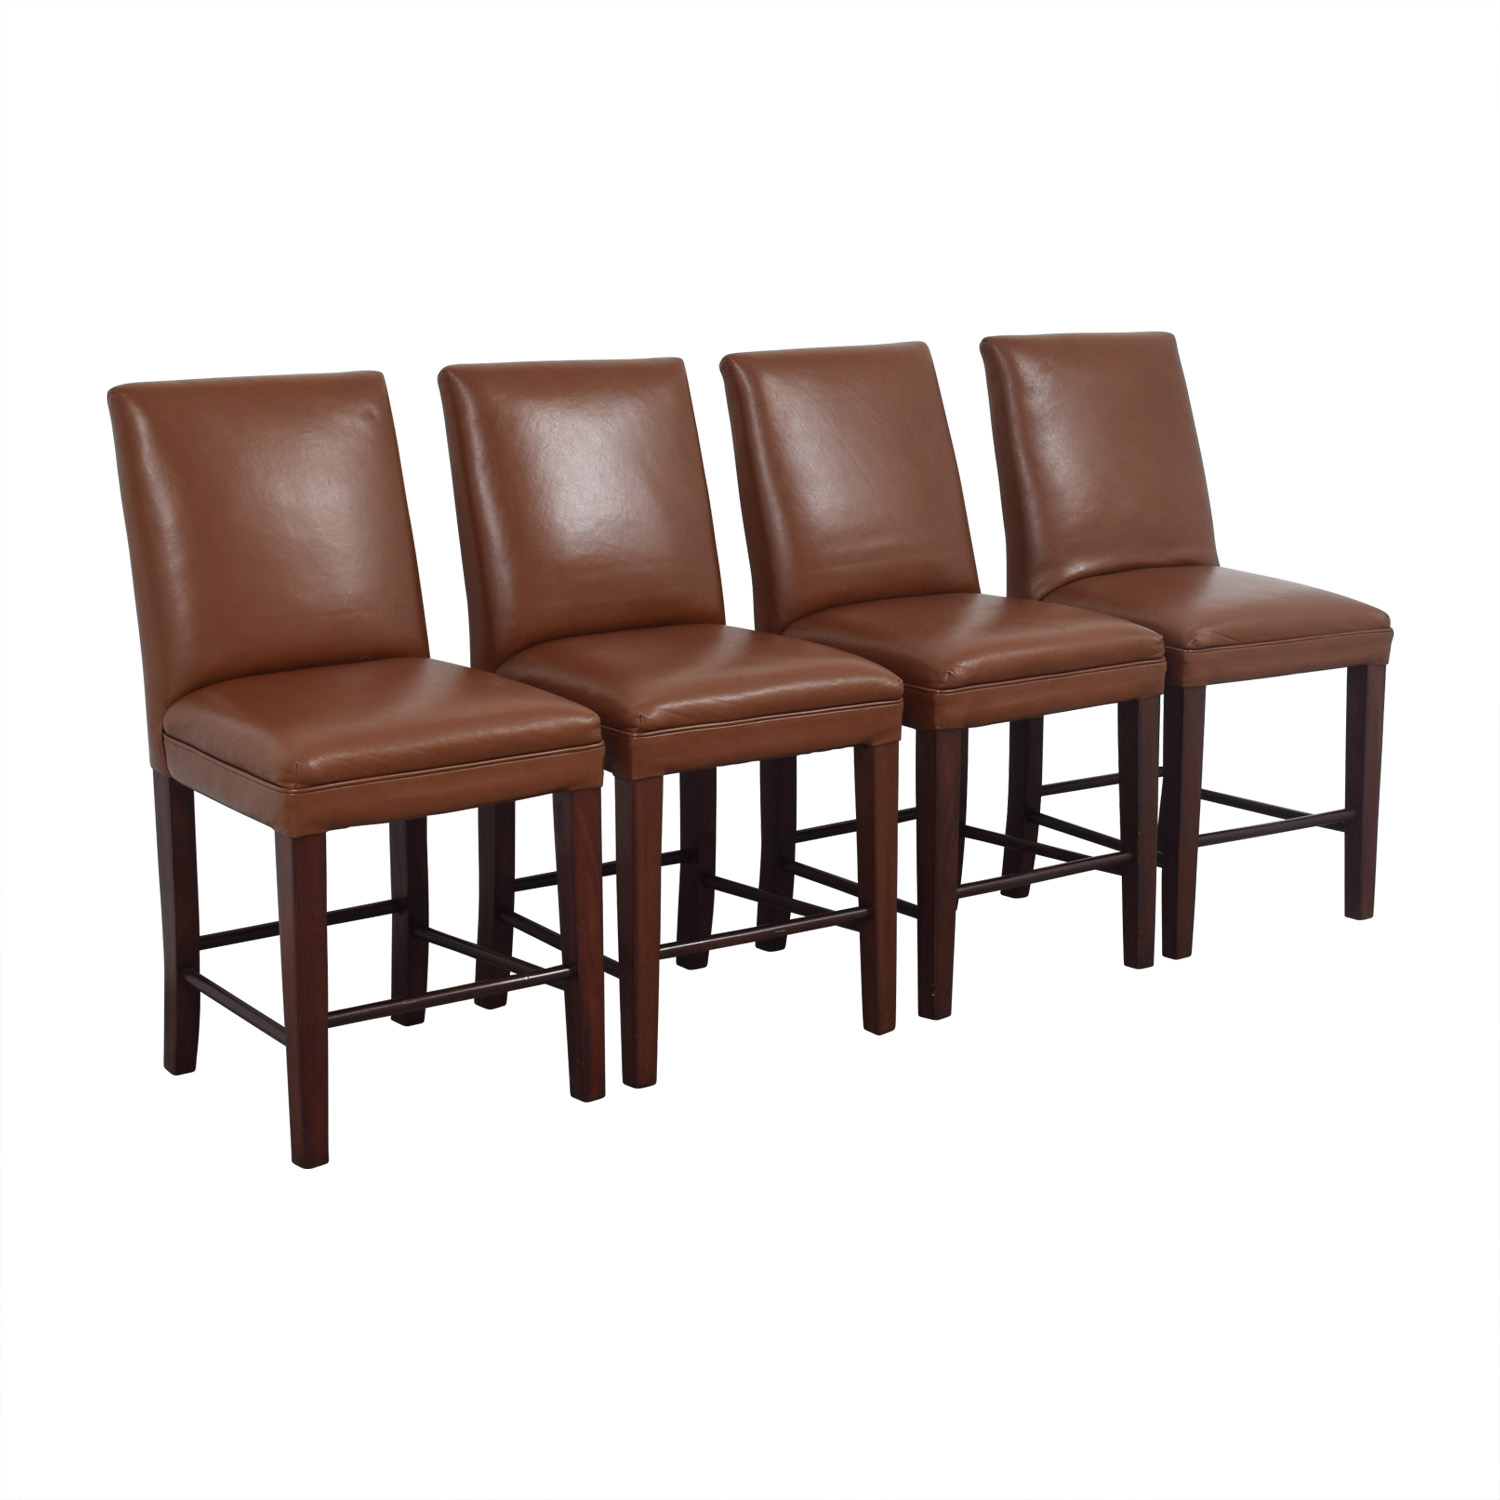 Cognac Leather Dining Chairs Brown